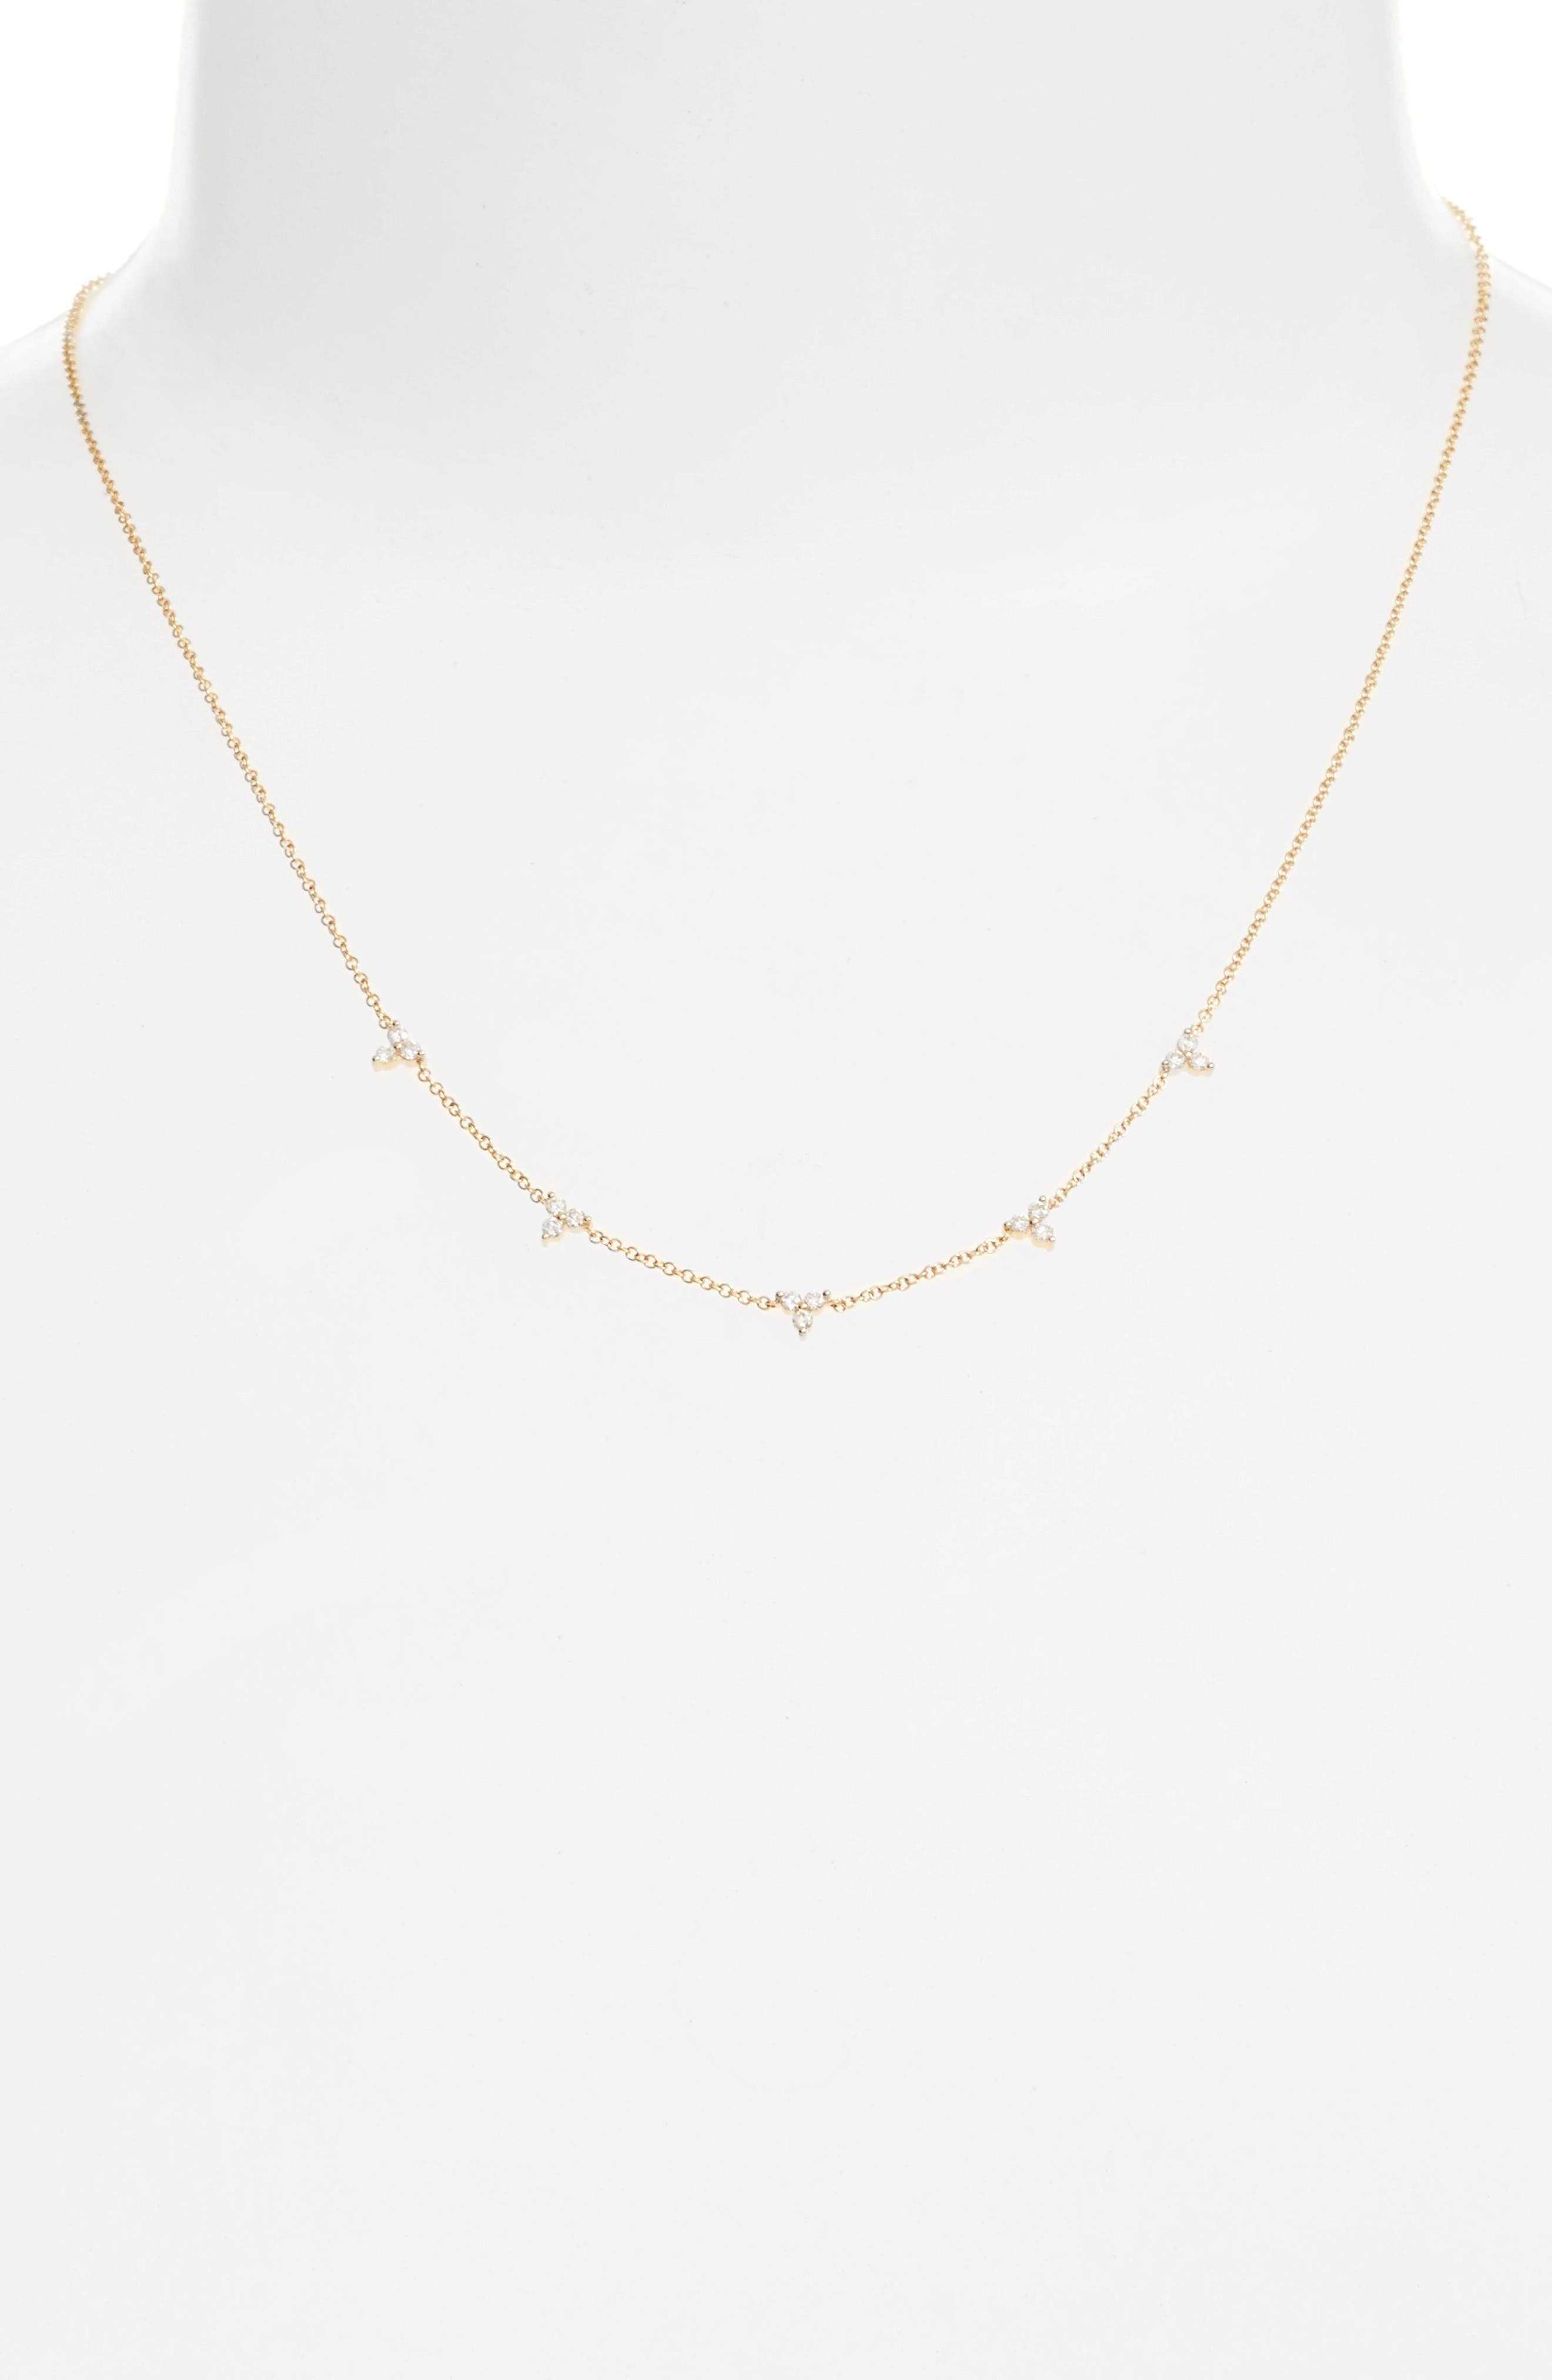 Main Image - EF COLLECTION Diamond Necklace